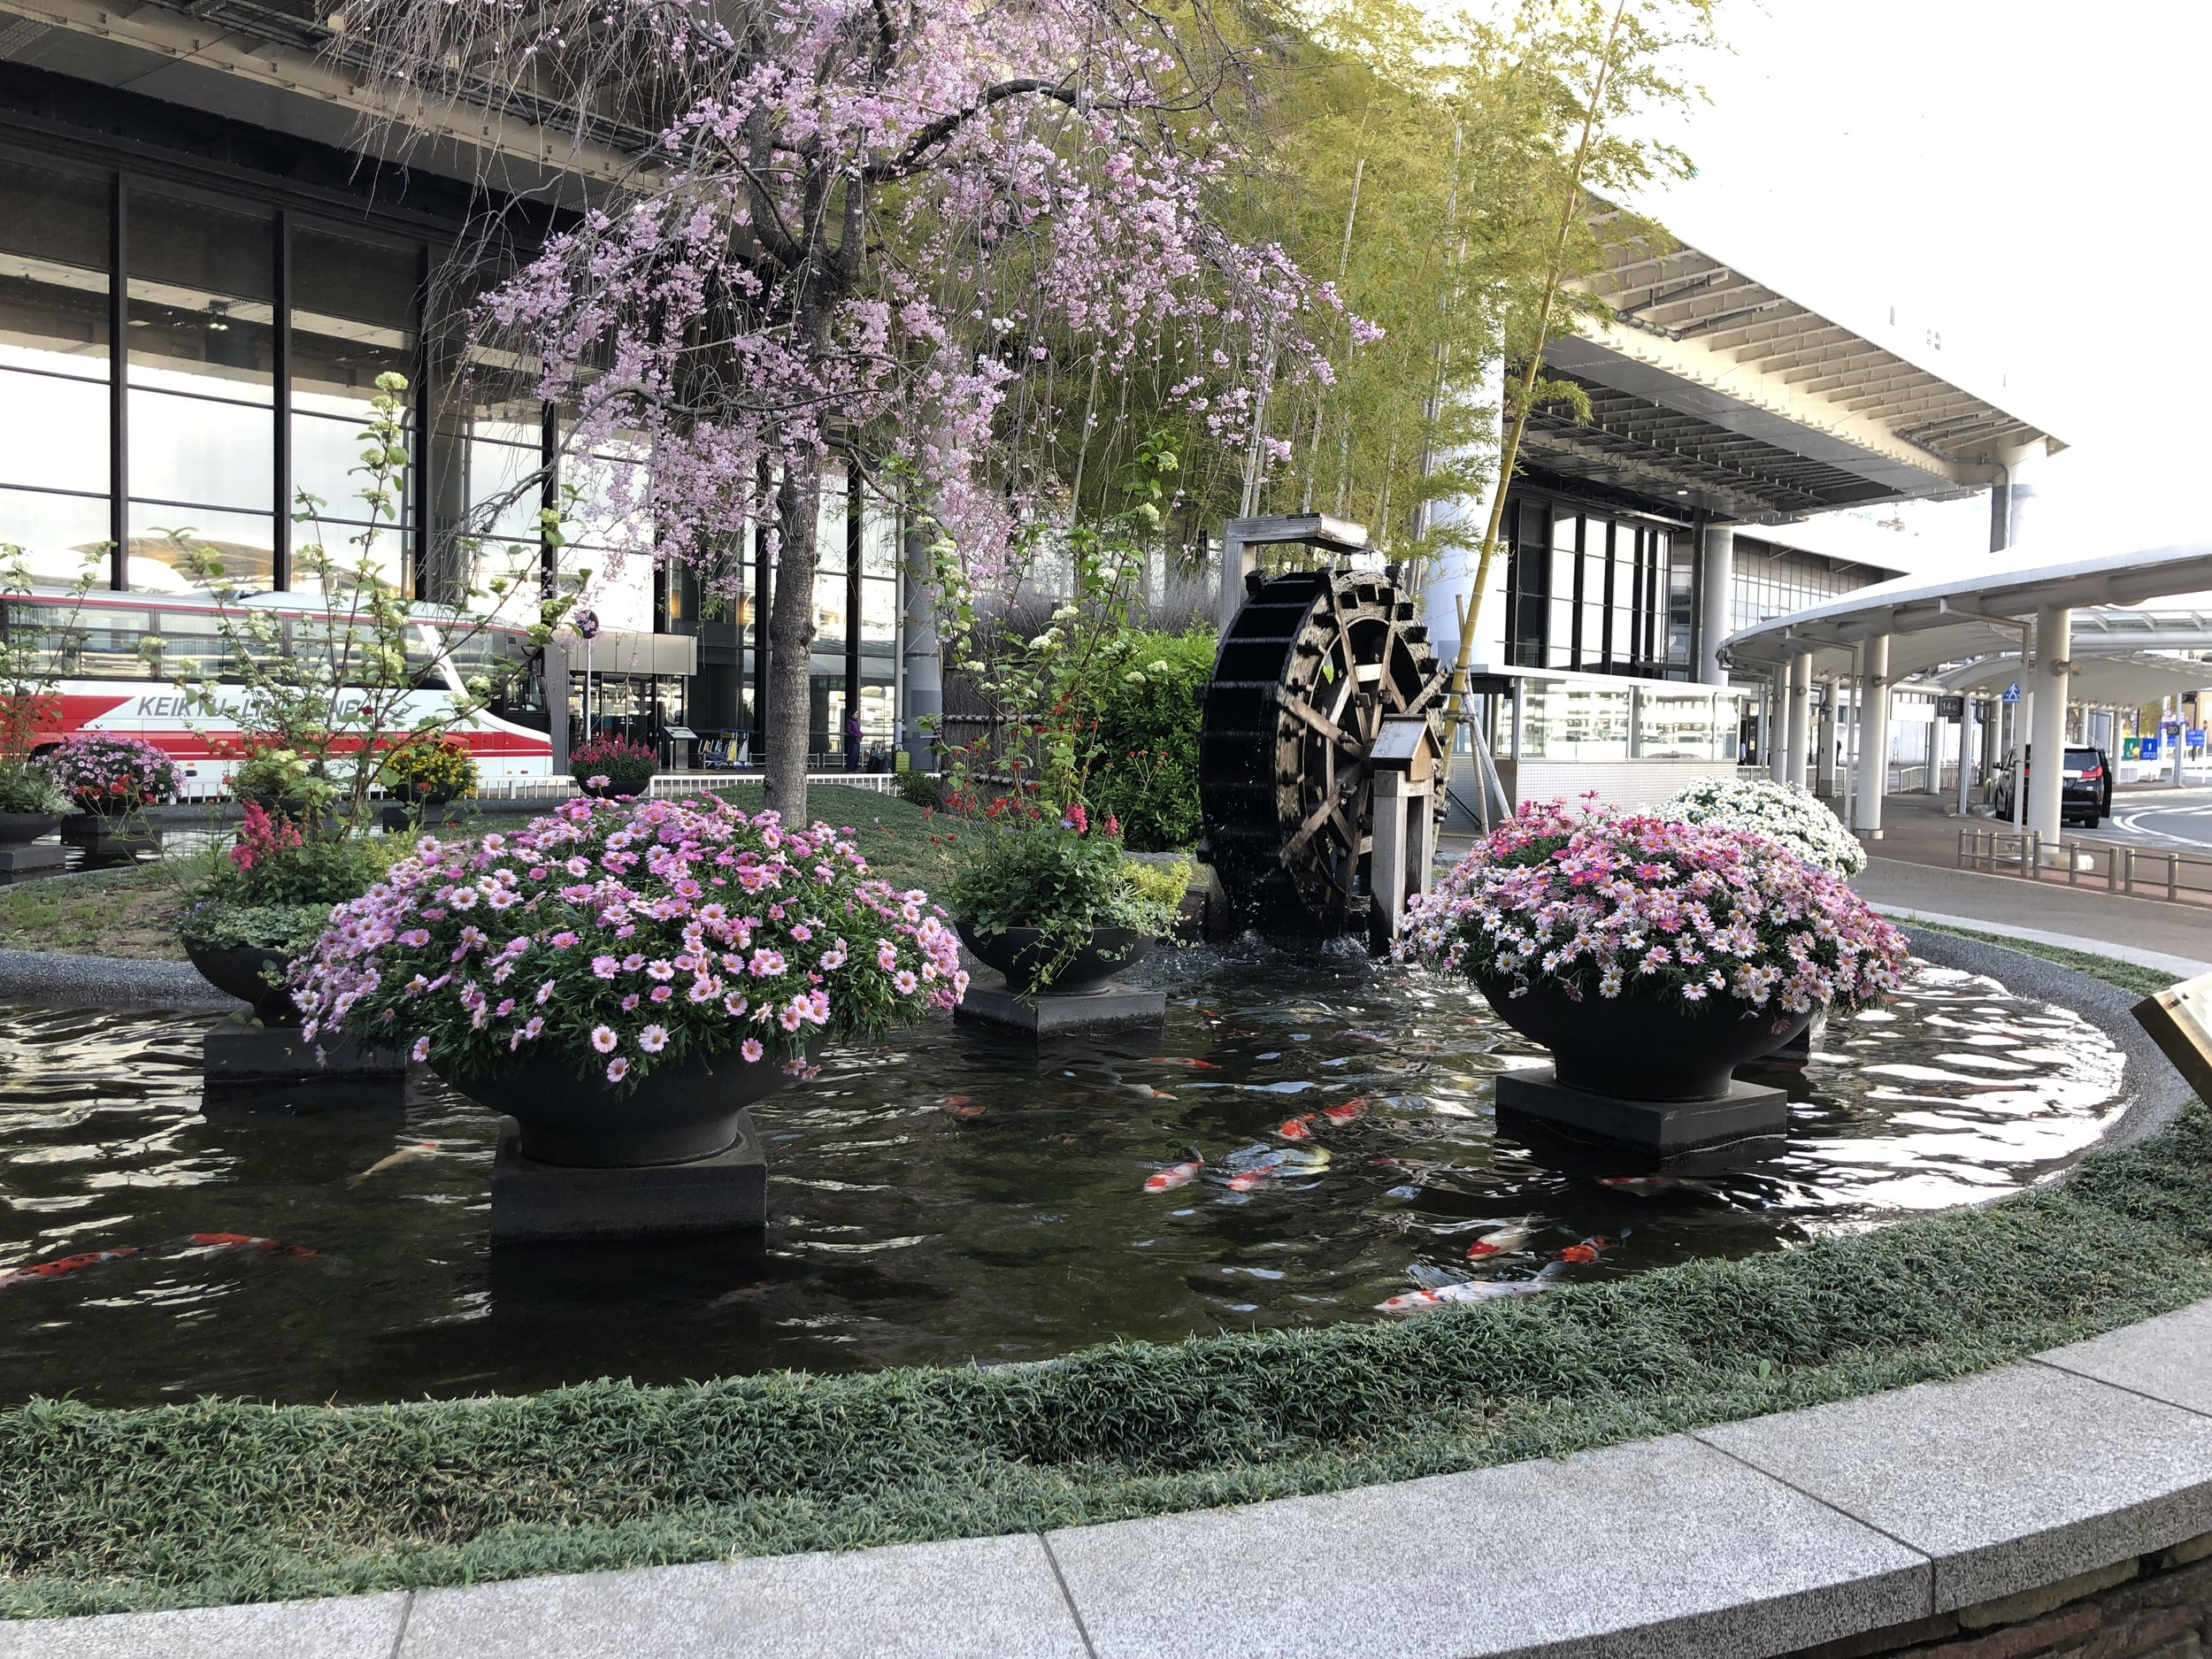 Japan is so beautiful in the Spring. Even directly outside their airport, Koi Ponds are scattered around & you can see the Cherry Blossoms are still in bloom! This is going to make for some exciting pictures this week!